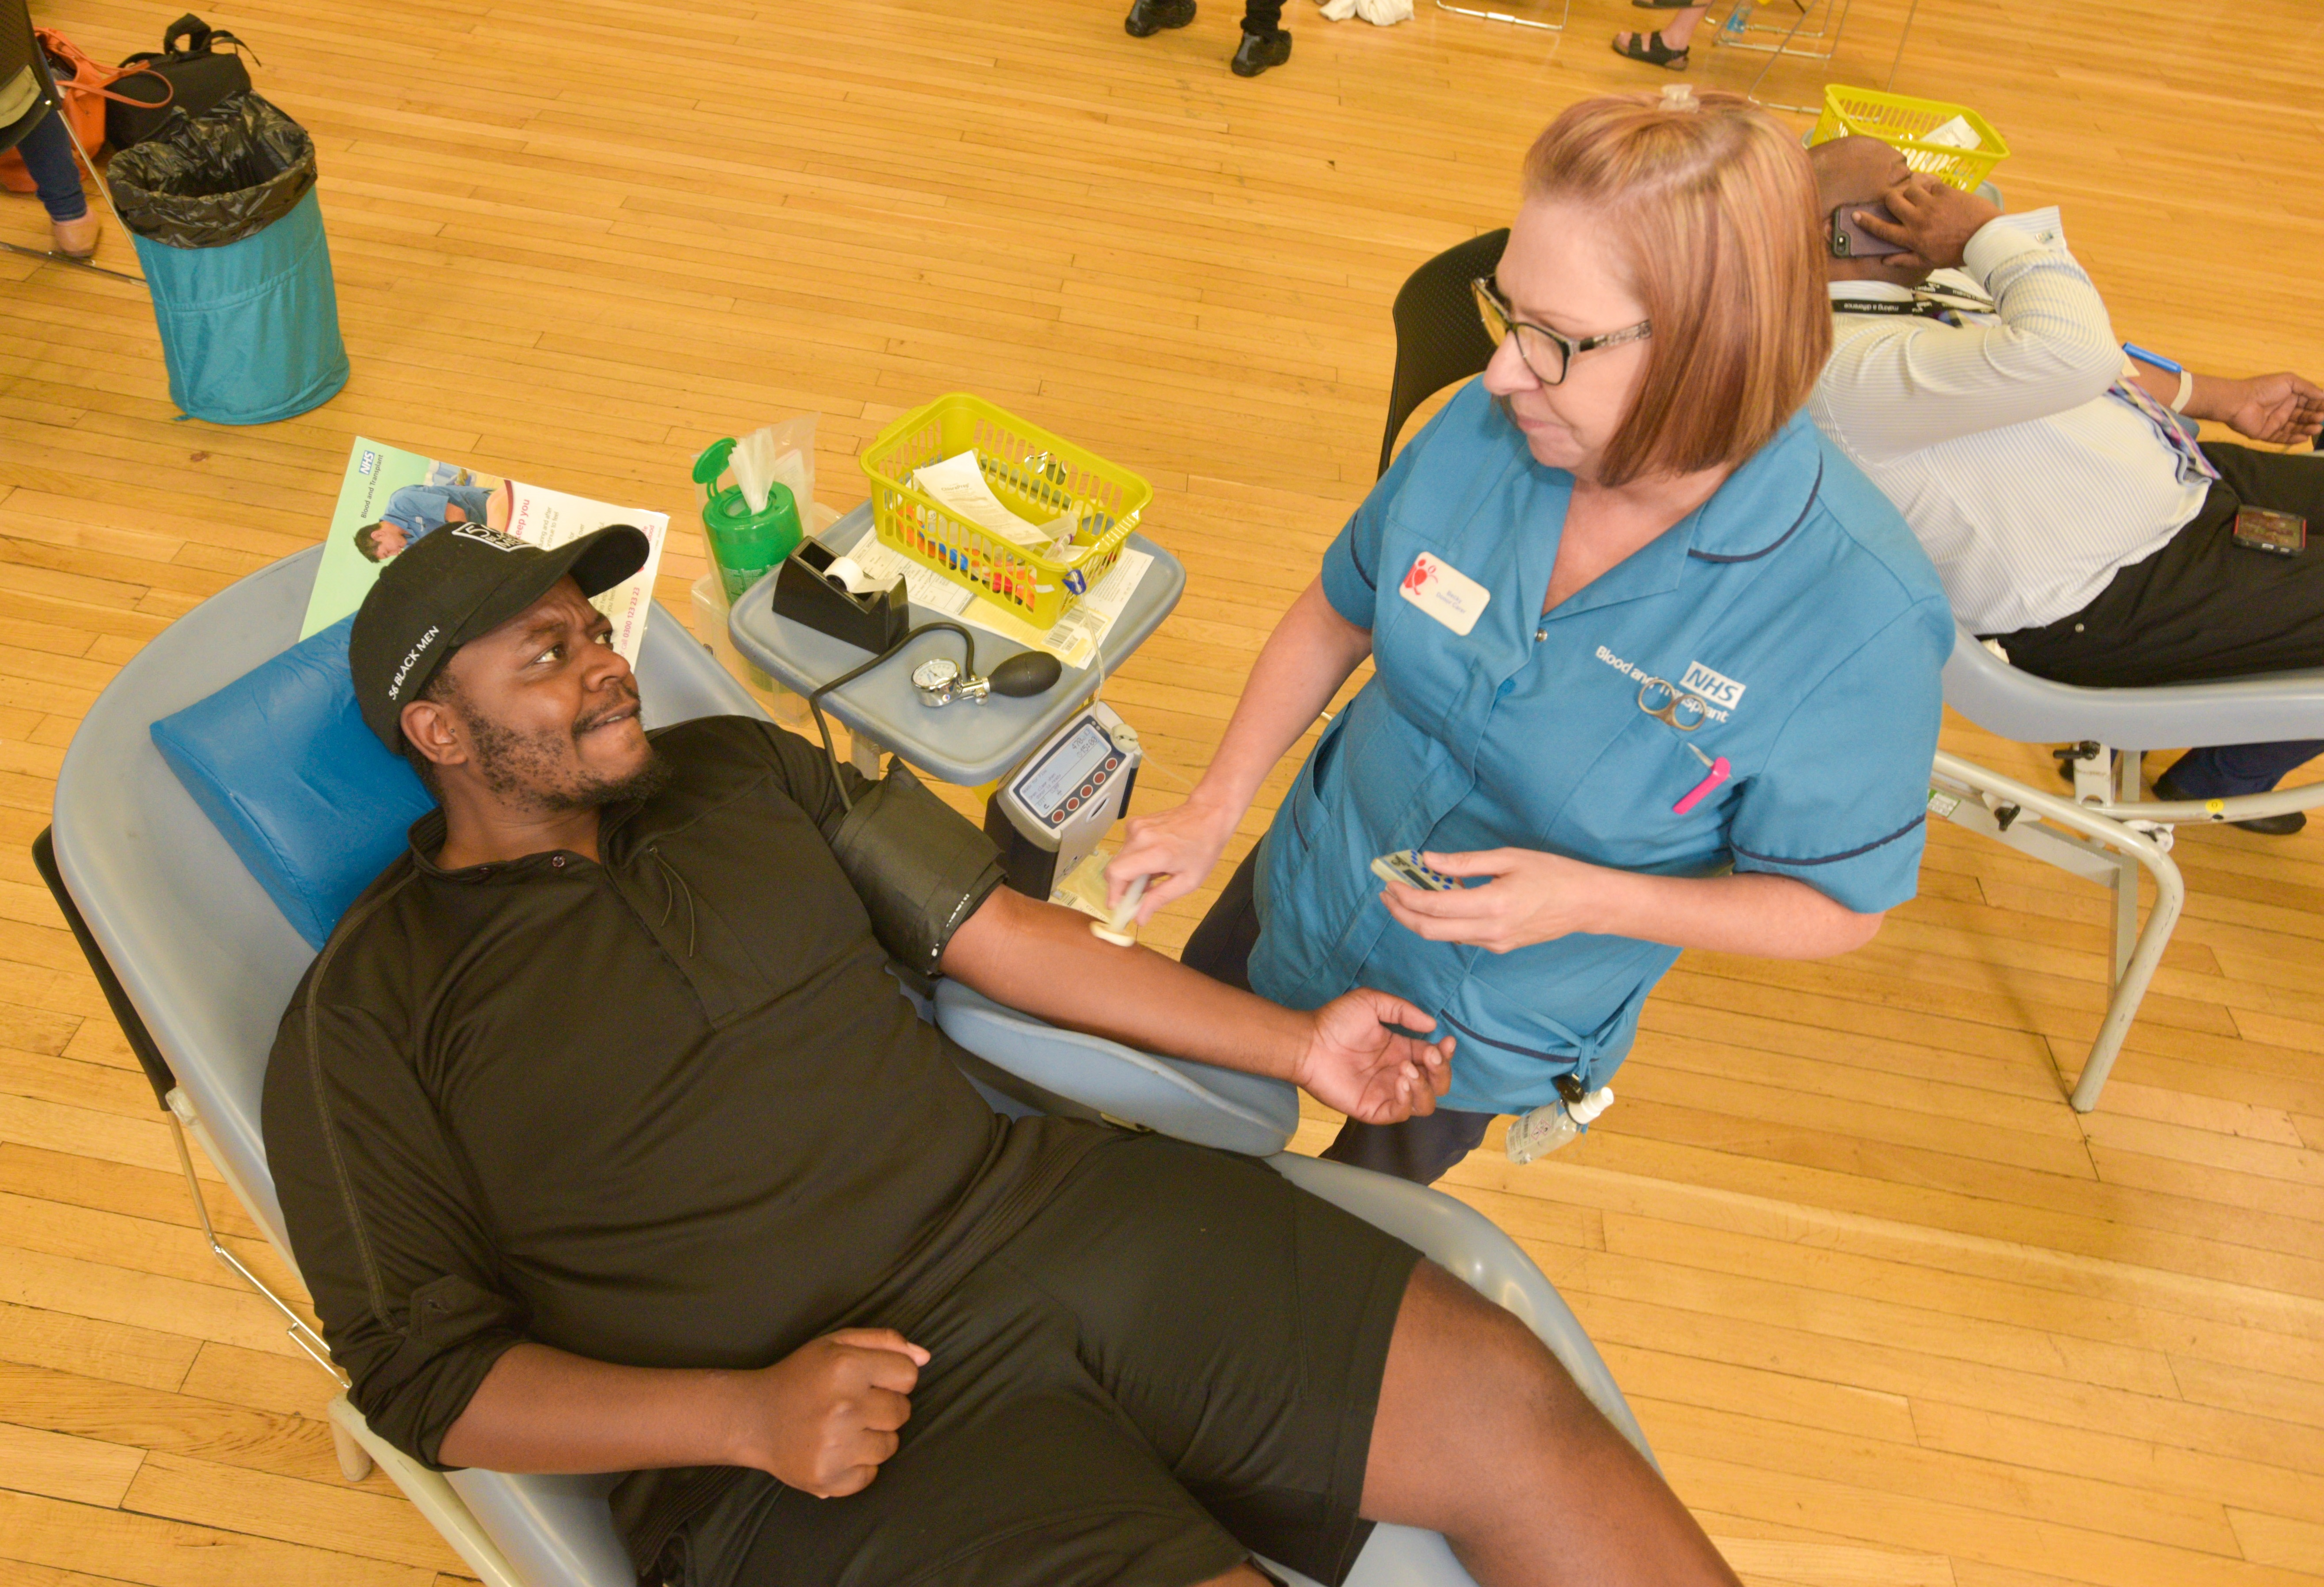 Bird's eye viewing a donor carer cleaning a man's arm before he gives blood